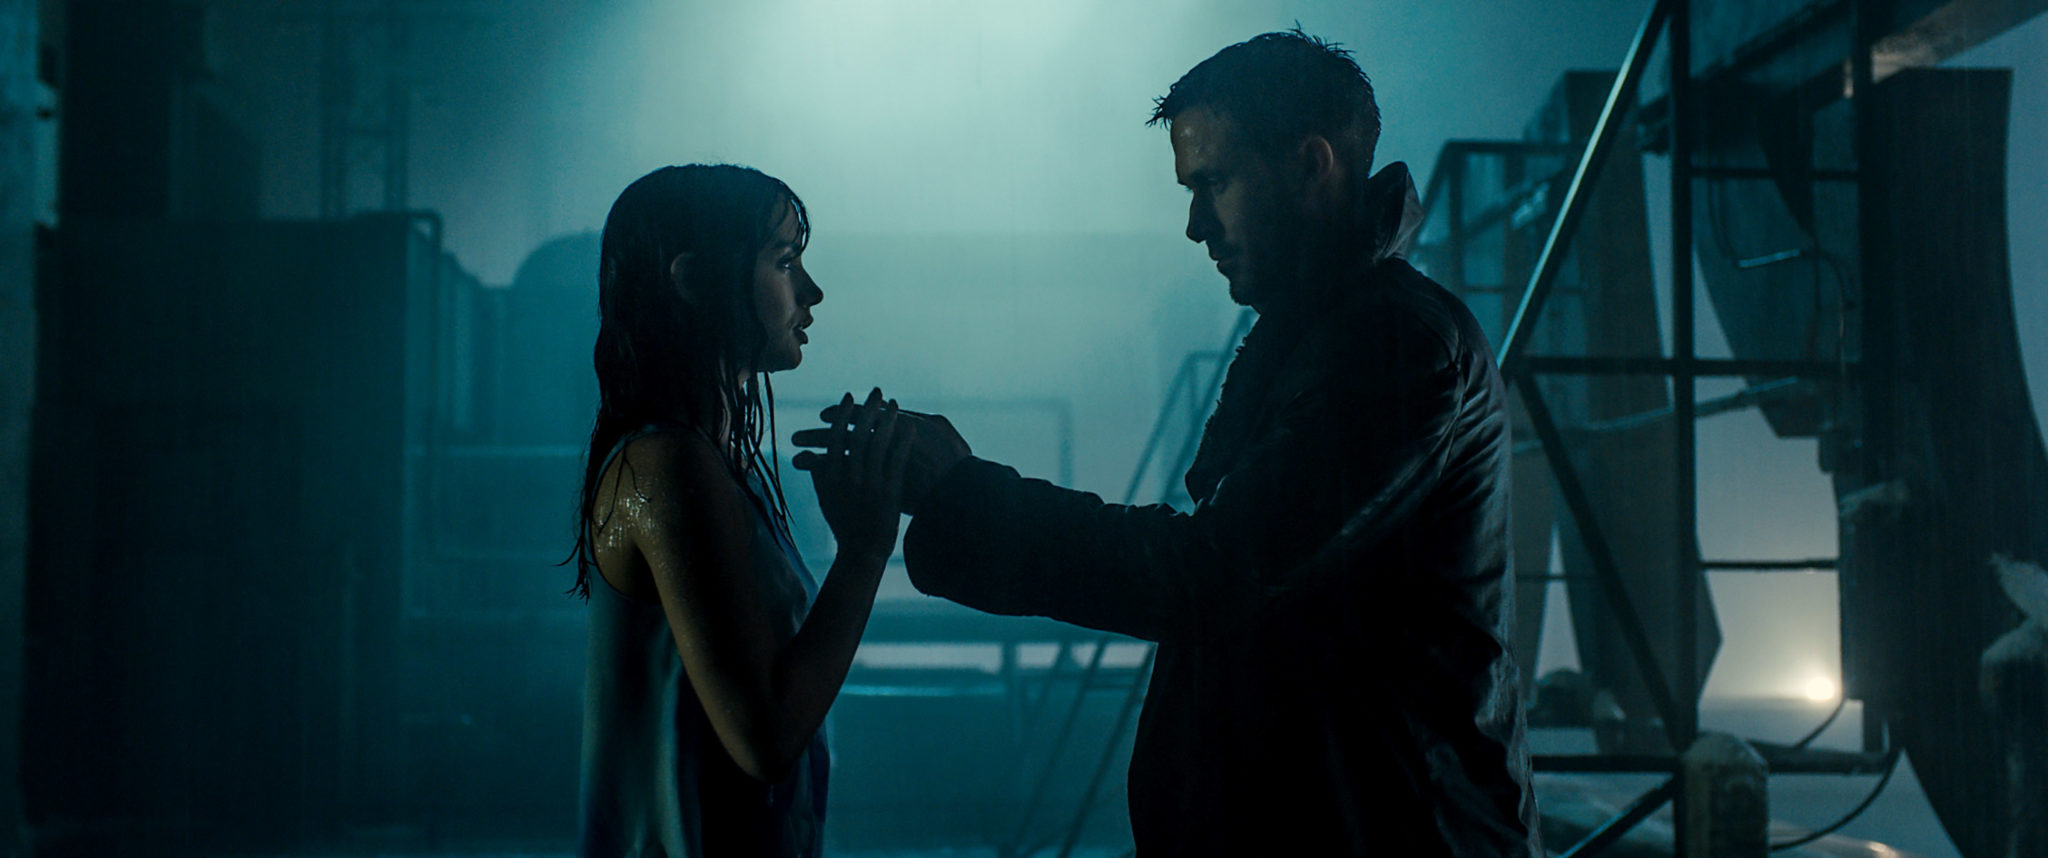 Nudity, \'Blade Runner 2049\' and the Hollywood Gaze - CURNBLOG